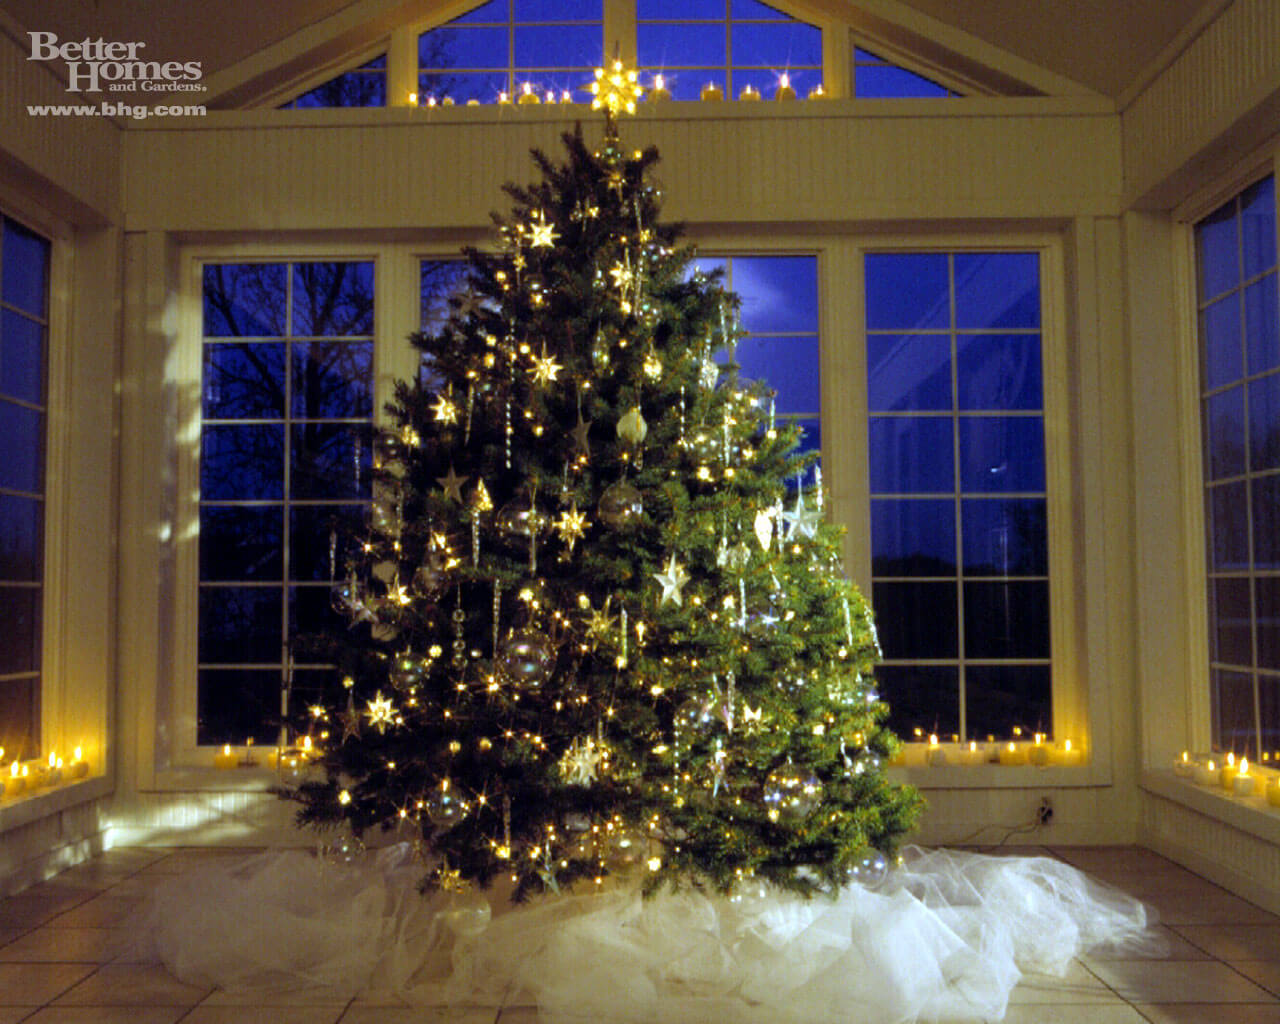 Design Christmas Tree in Best Position on your Home